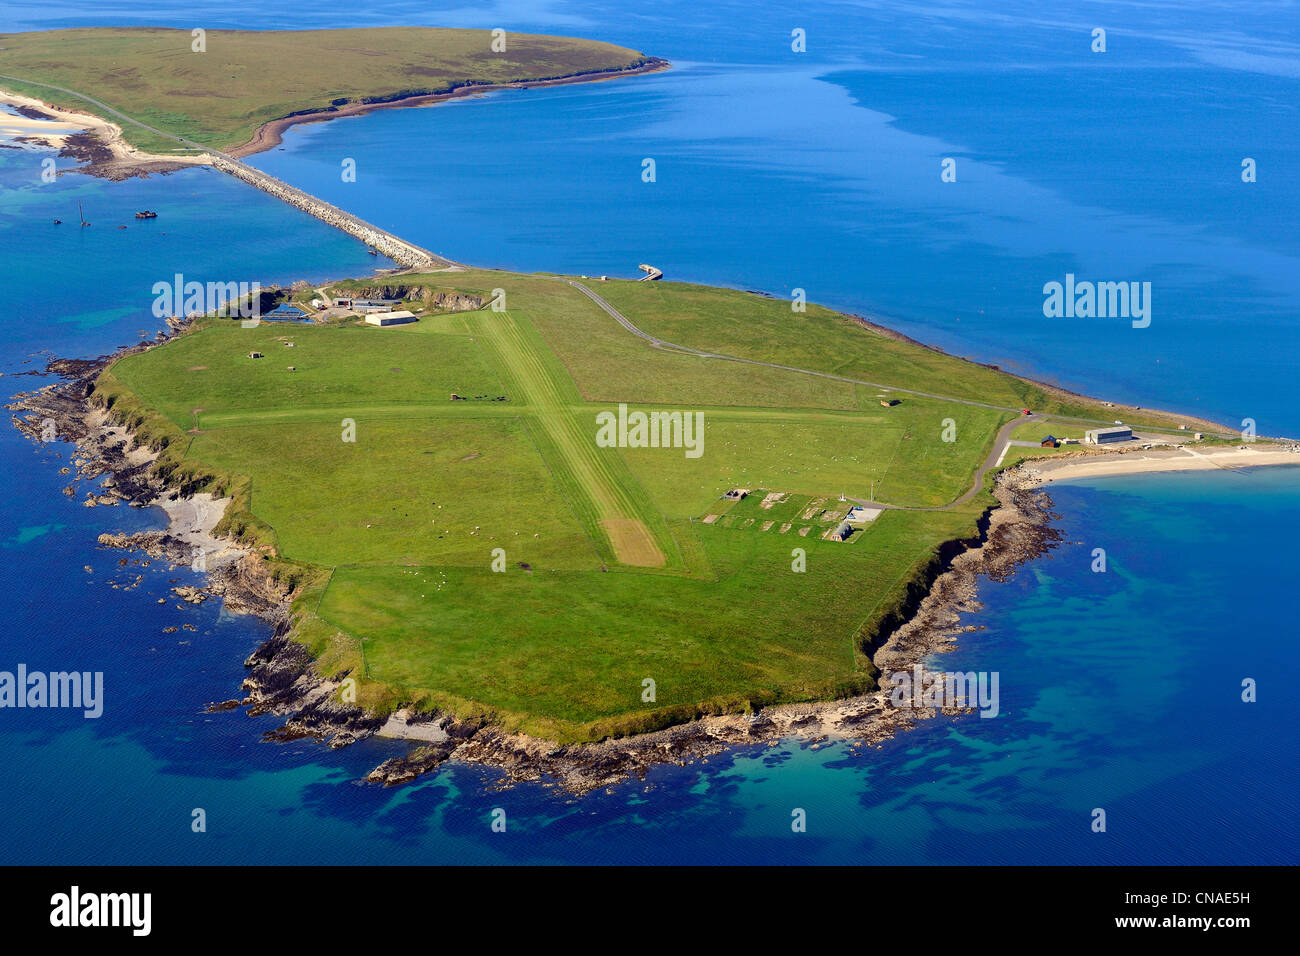 United Kingdom, Scotland, Orkney Islands, airfield on Lambholm Island (aerial view) - Stock Image